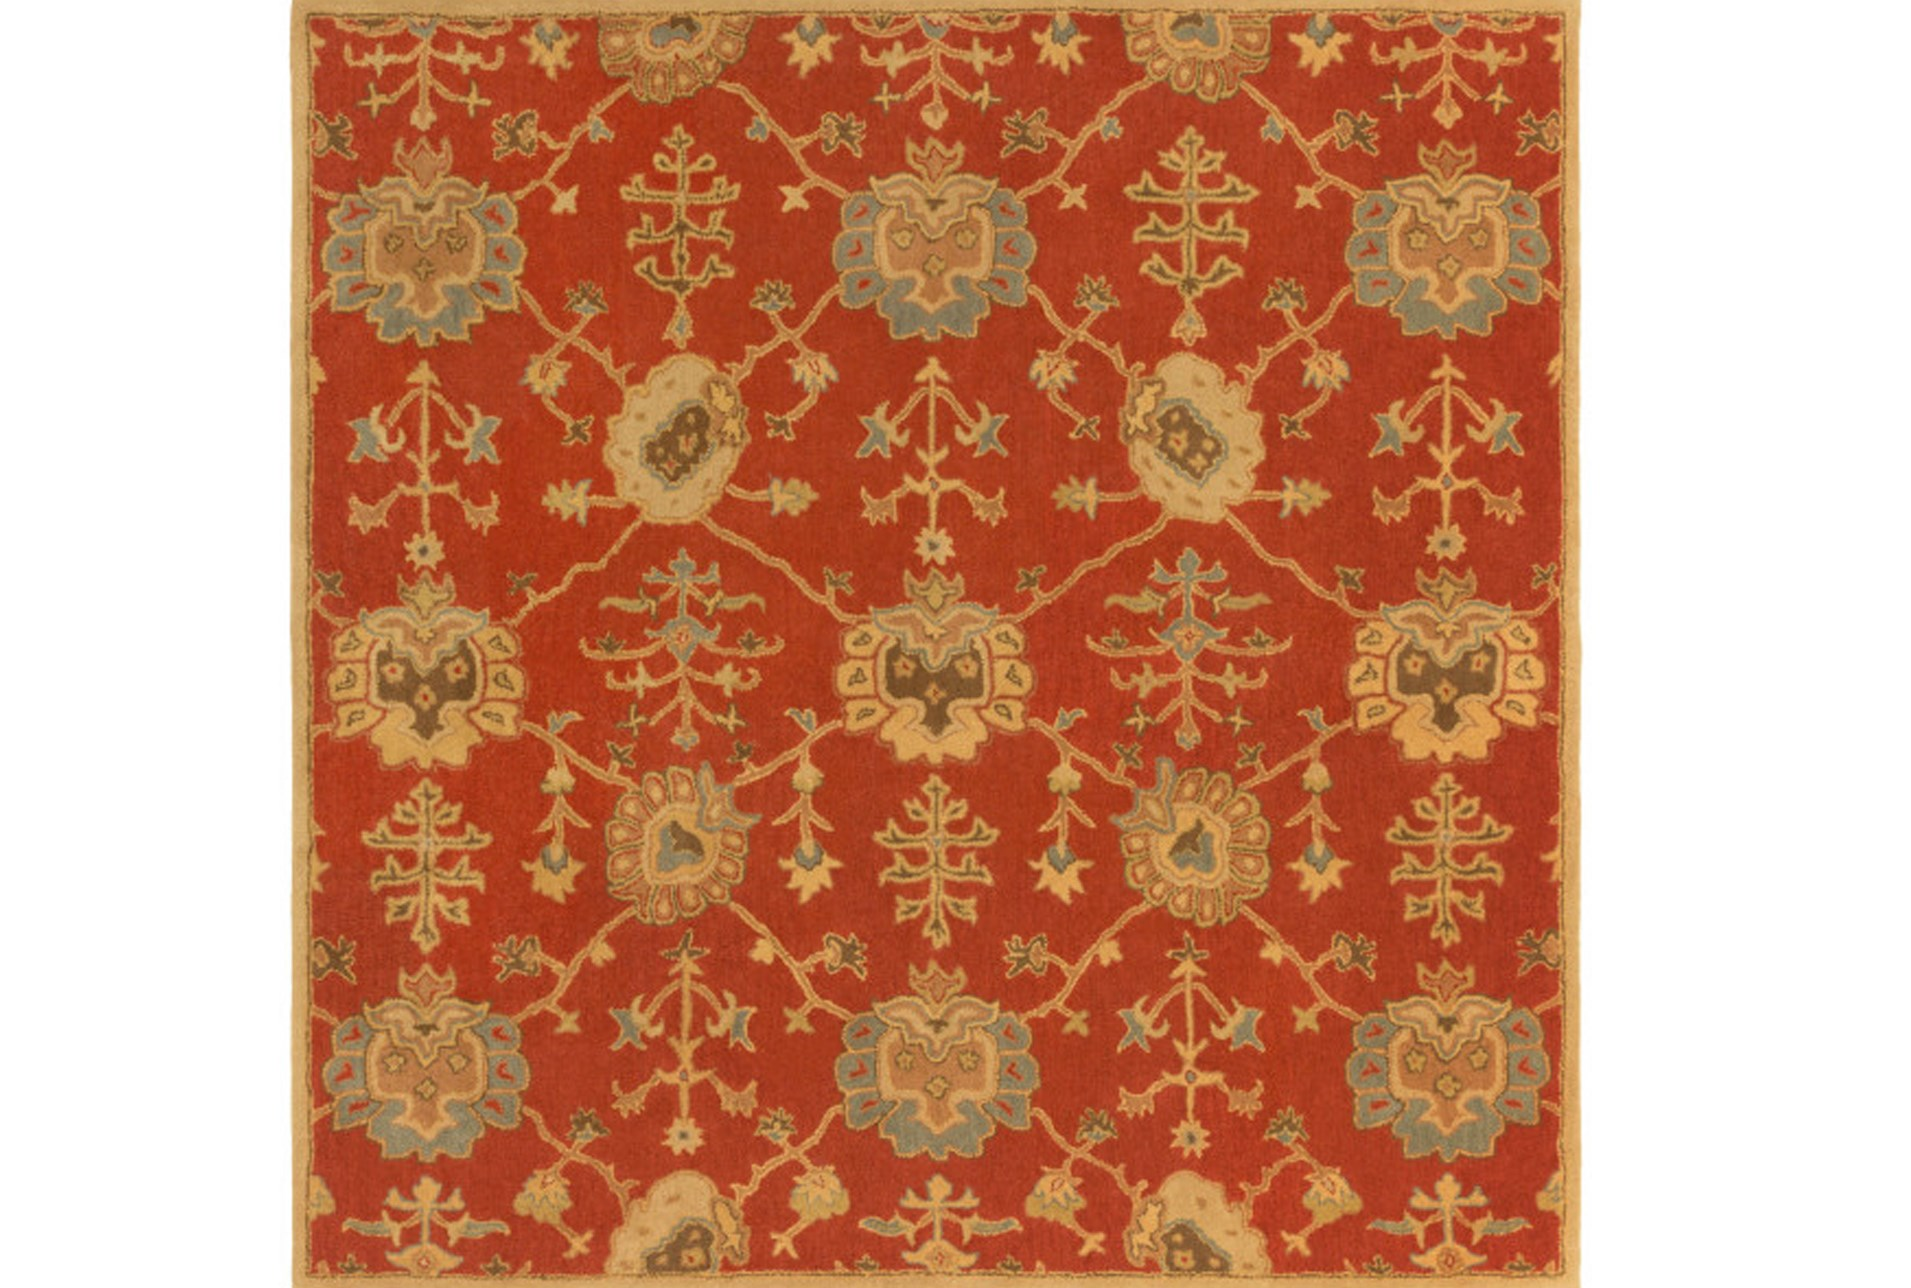 48x48 Square Rug Callaby Red Qty 1 Has Been Successfully Added To Your Cart